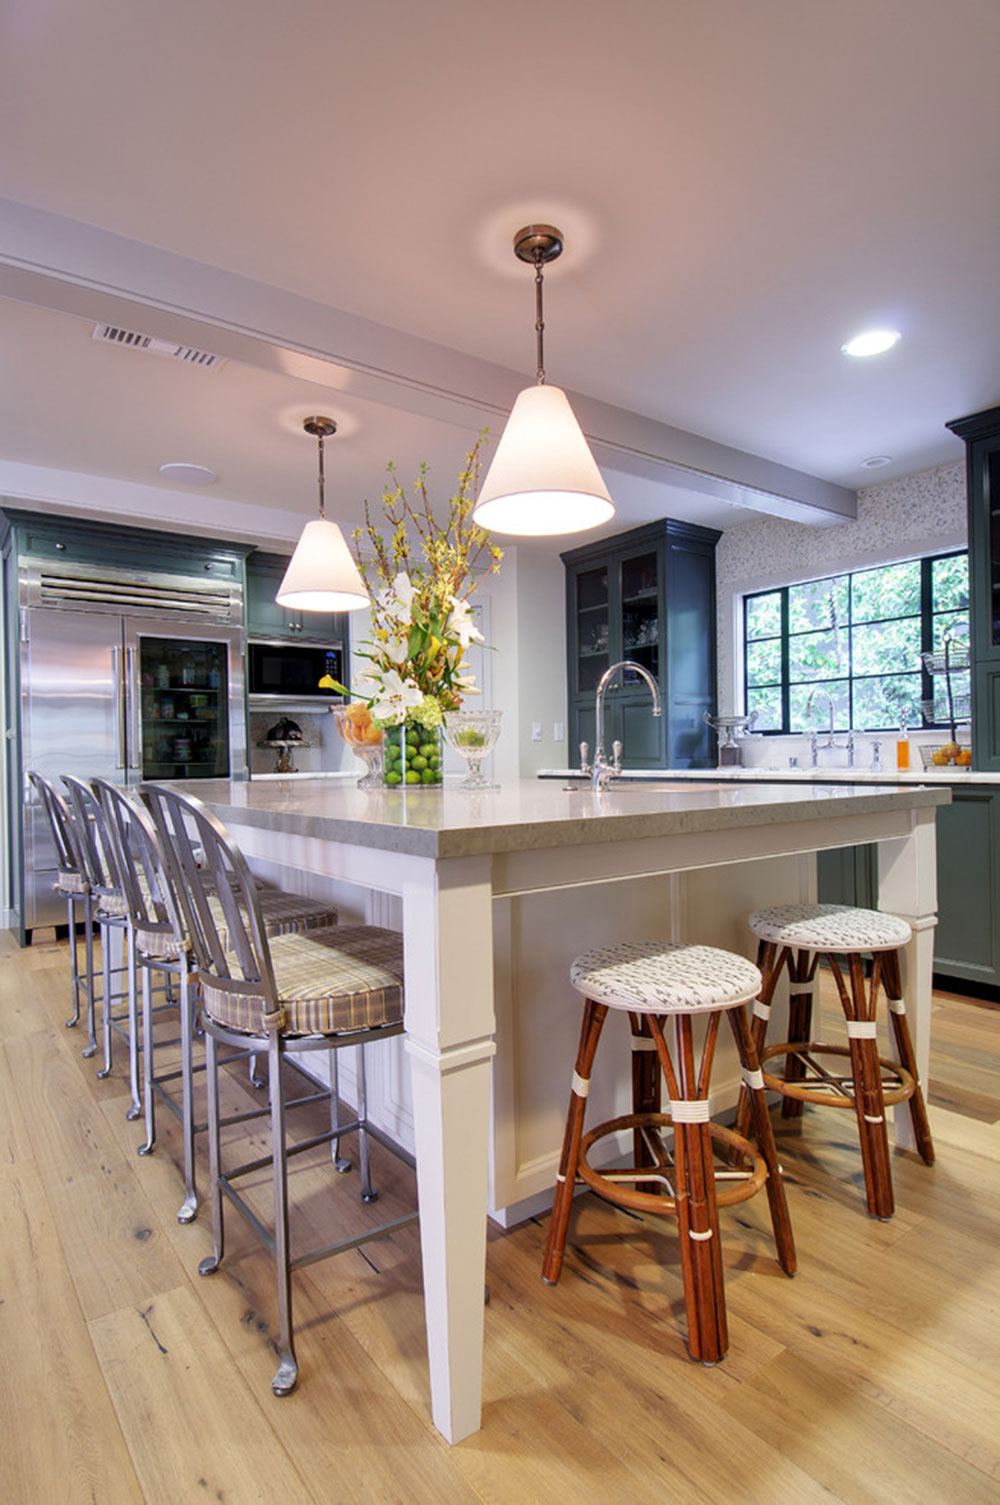 Kitchen Island Design Ideas With Seating image of ideas kitchen island seating Modern Kitchen Island Designs With Seating 7 Modern Kitchen Island